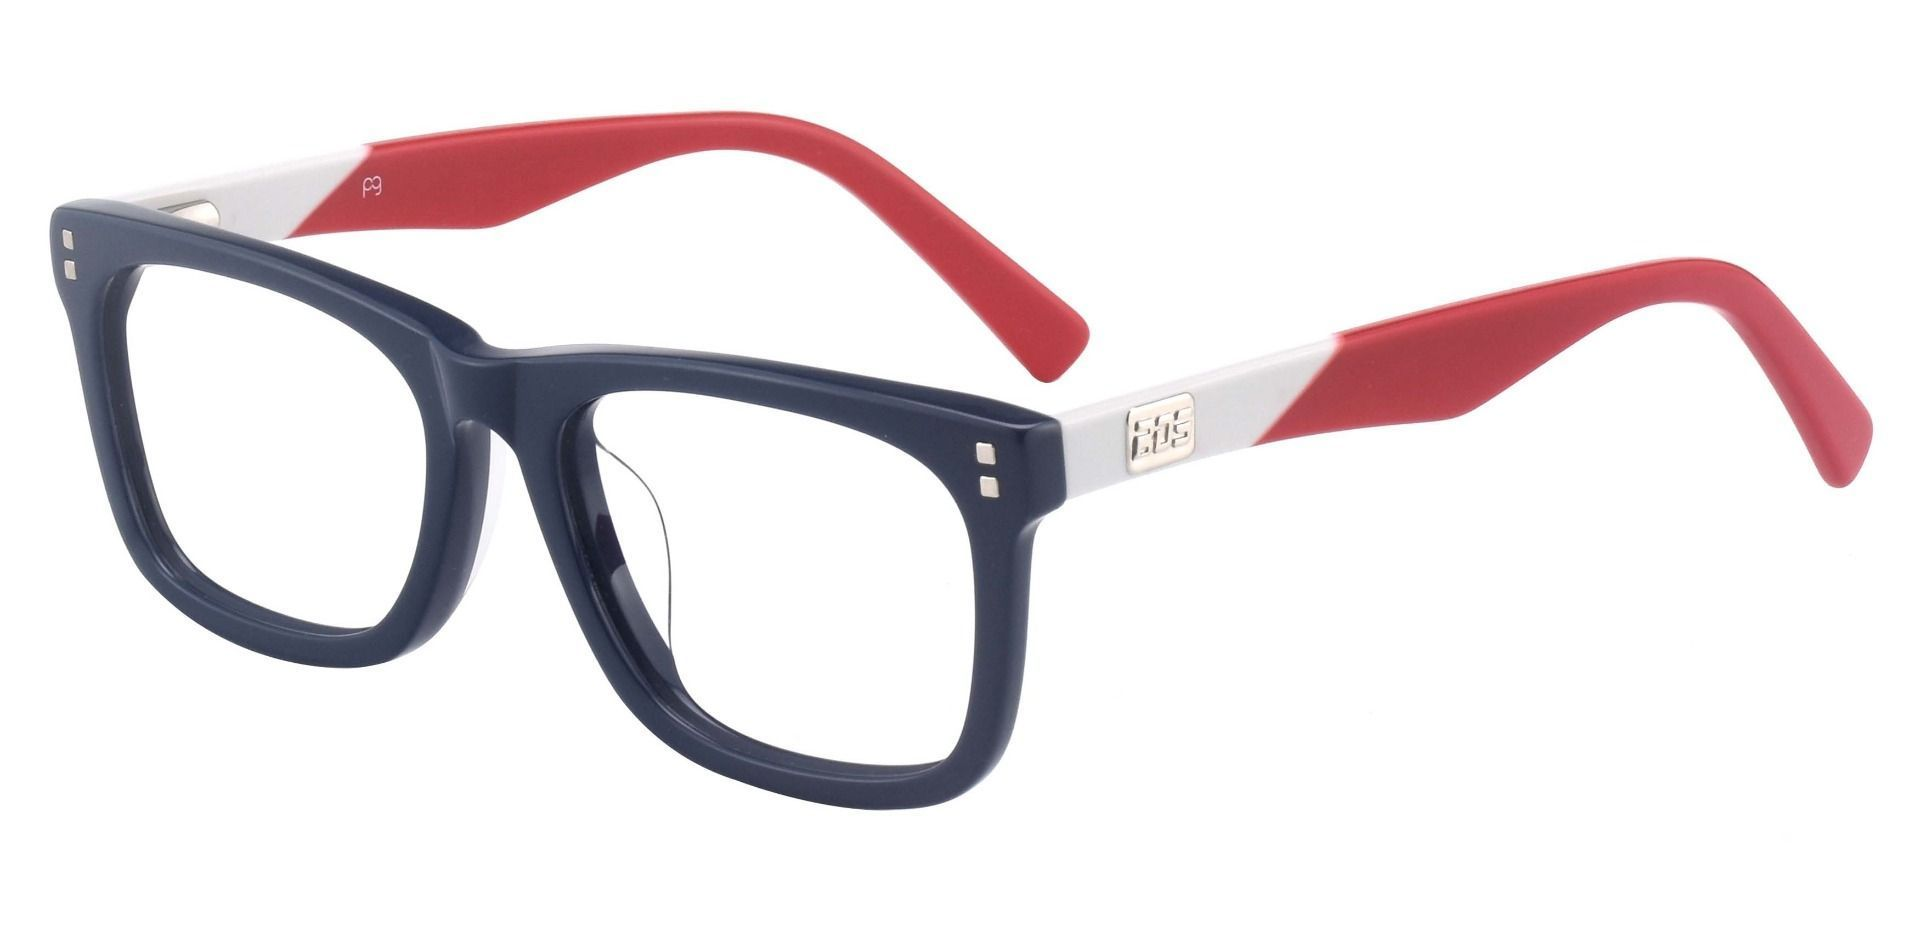 Harbor Rectangle Reading Glasses - The Frame Is Blue And Red